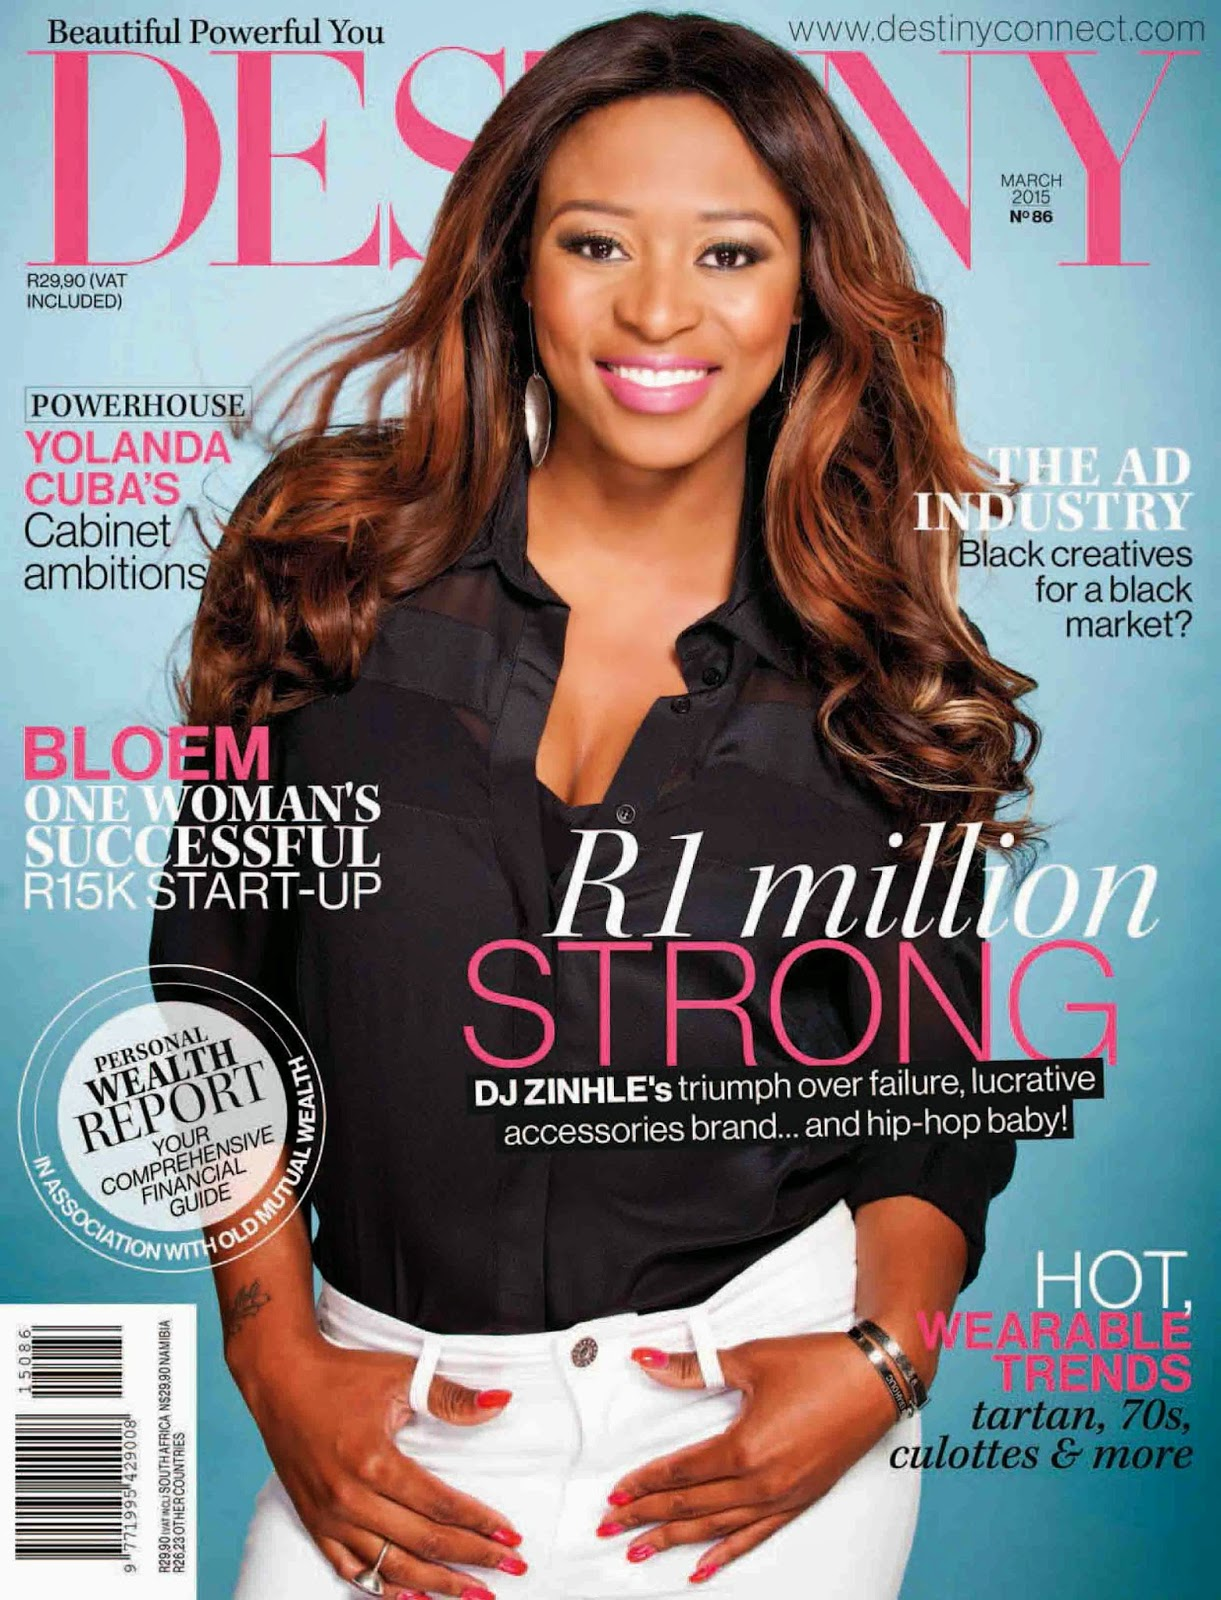 Musician, Band, Singer @ DJ Zinhle - Destiny Magazine, March 2015